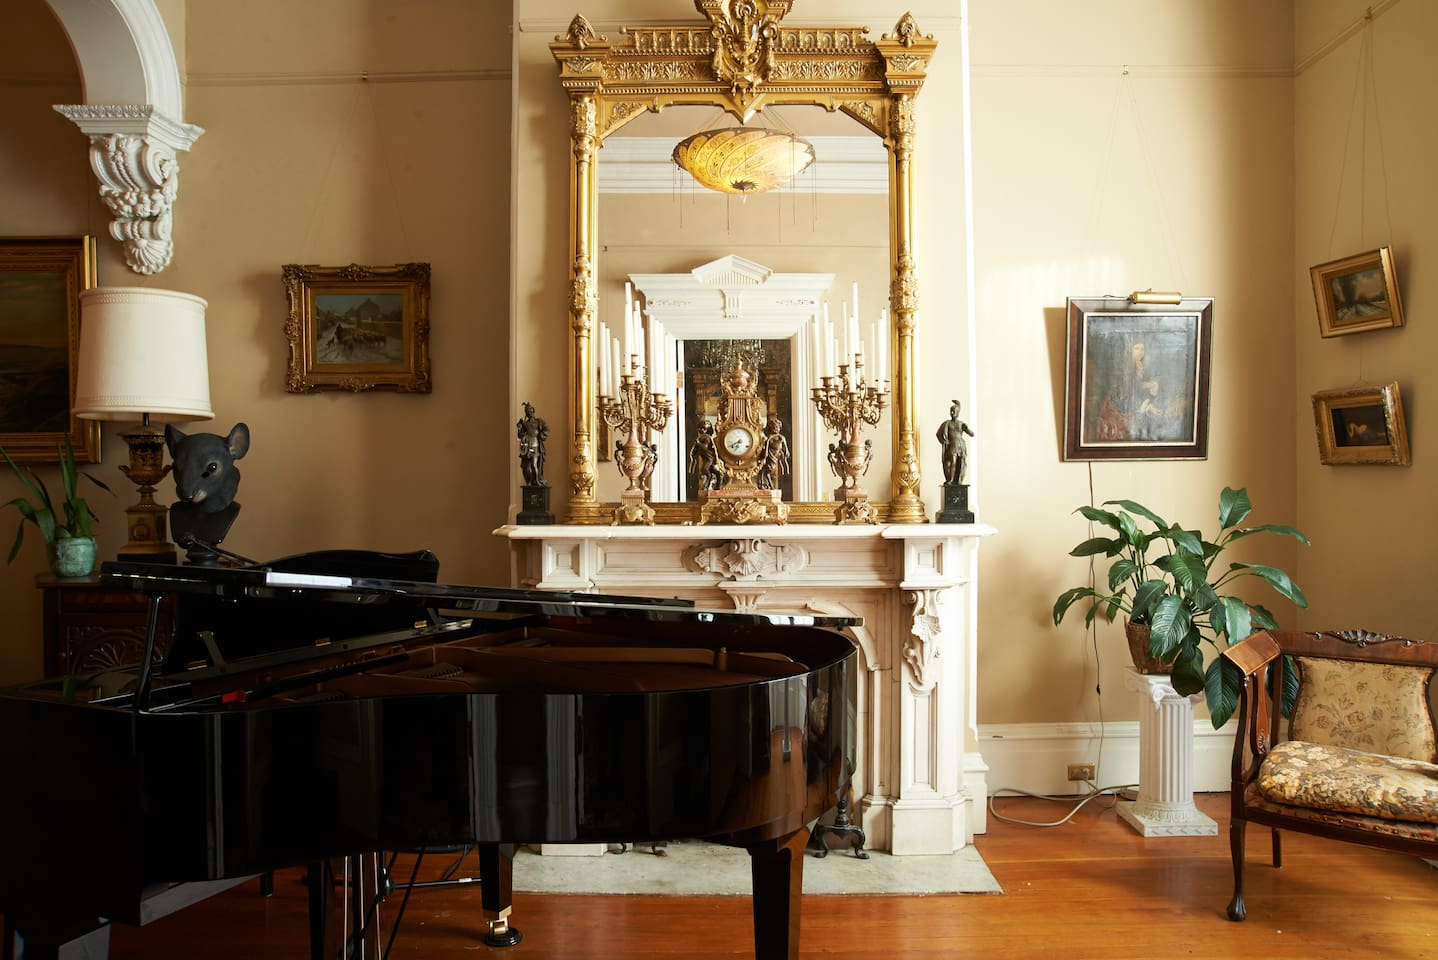 The grand parlor.